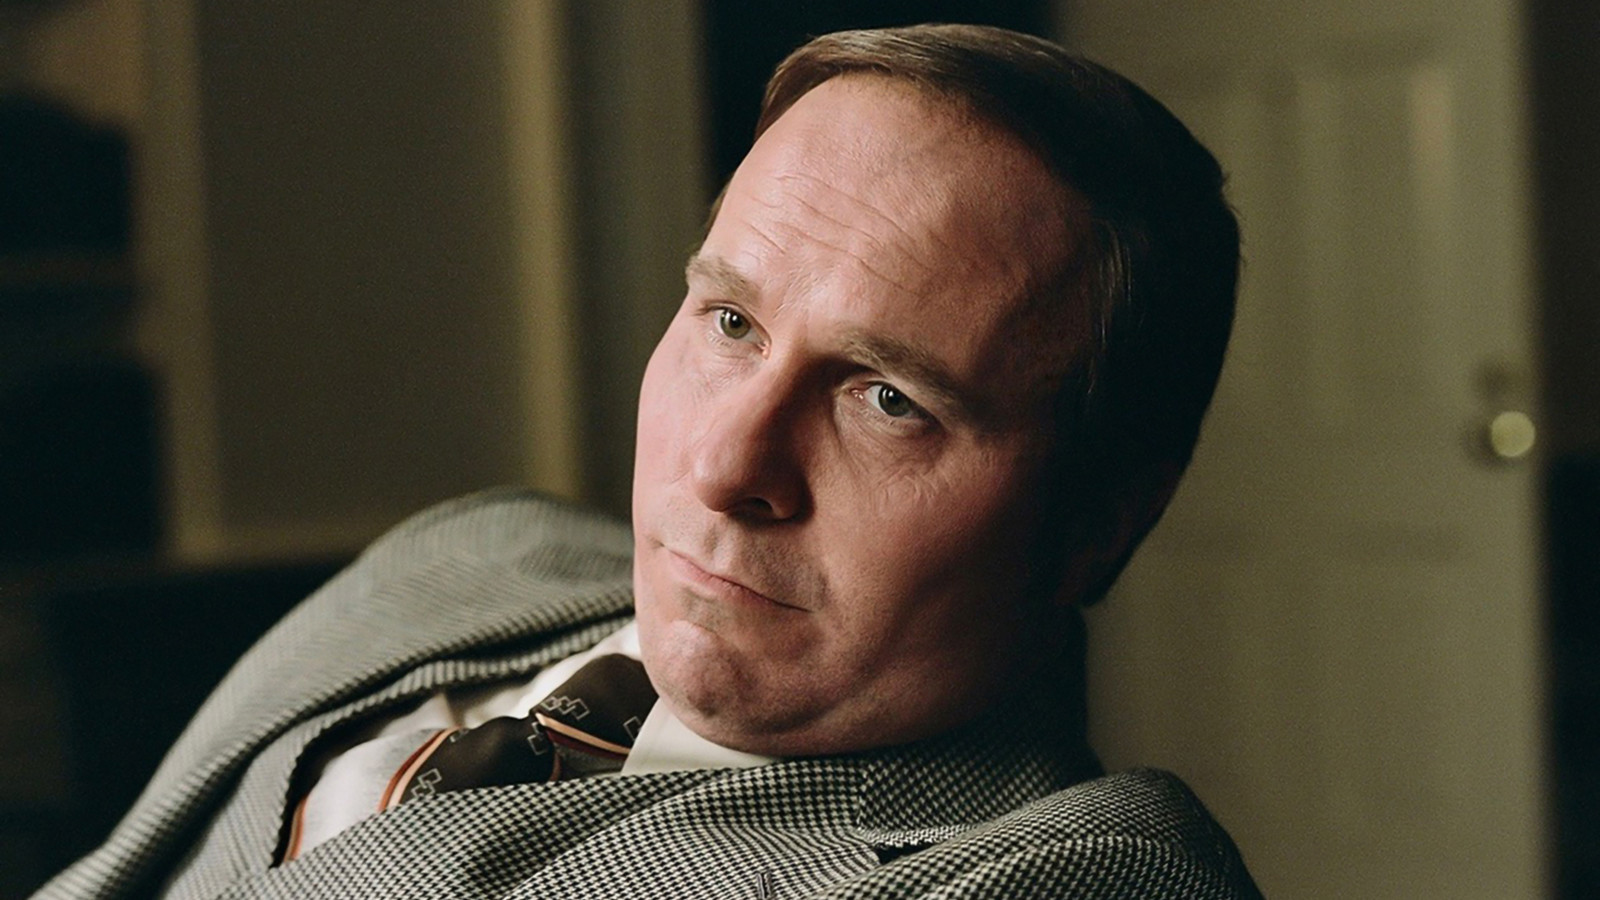 Review: There are lessons in Dick Cheney biopic 'Vice,' for those who choose to heed them